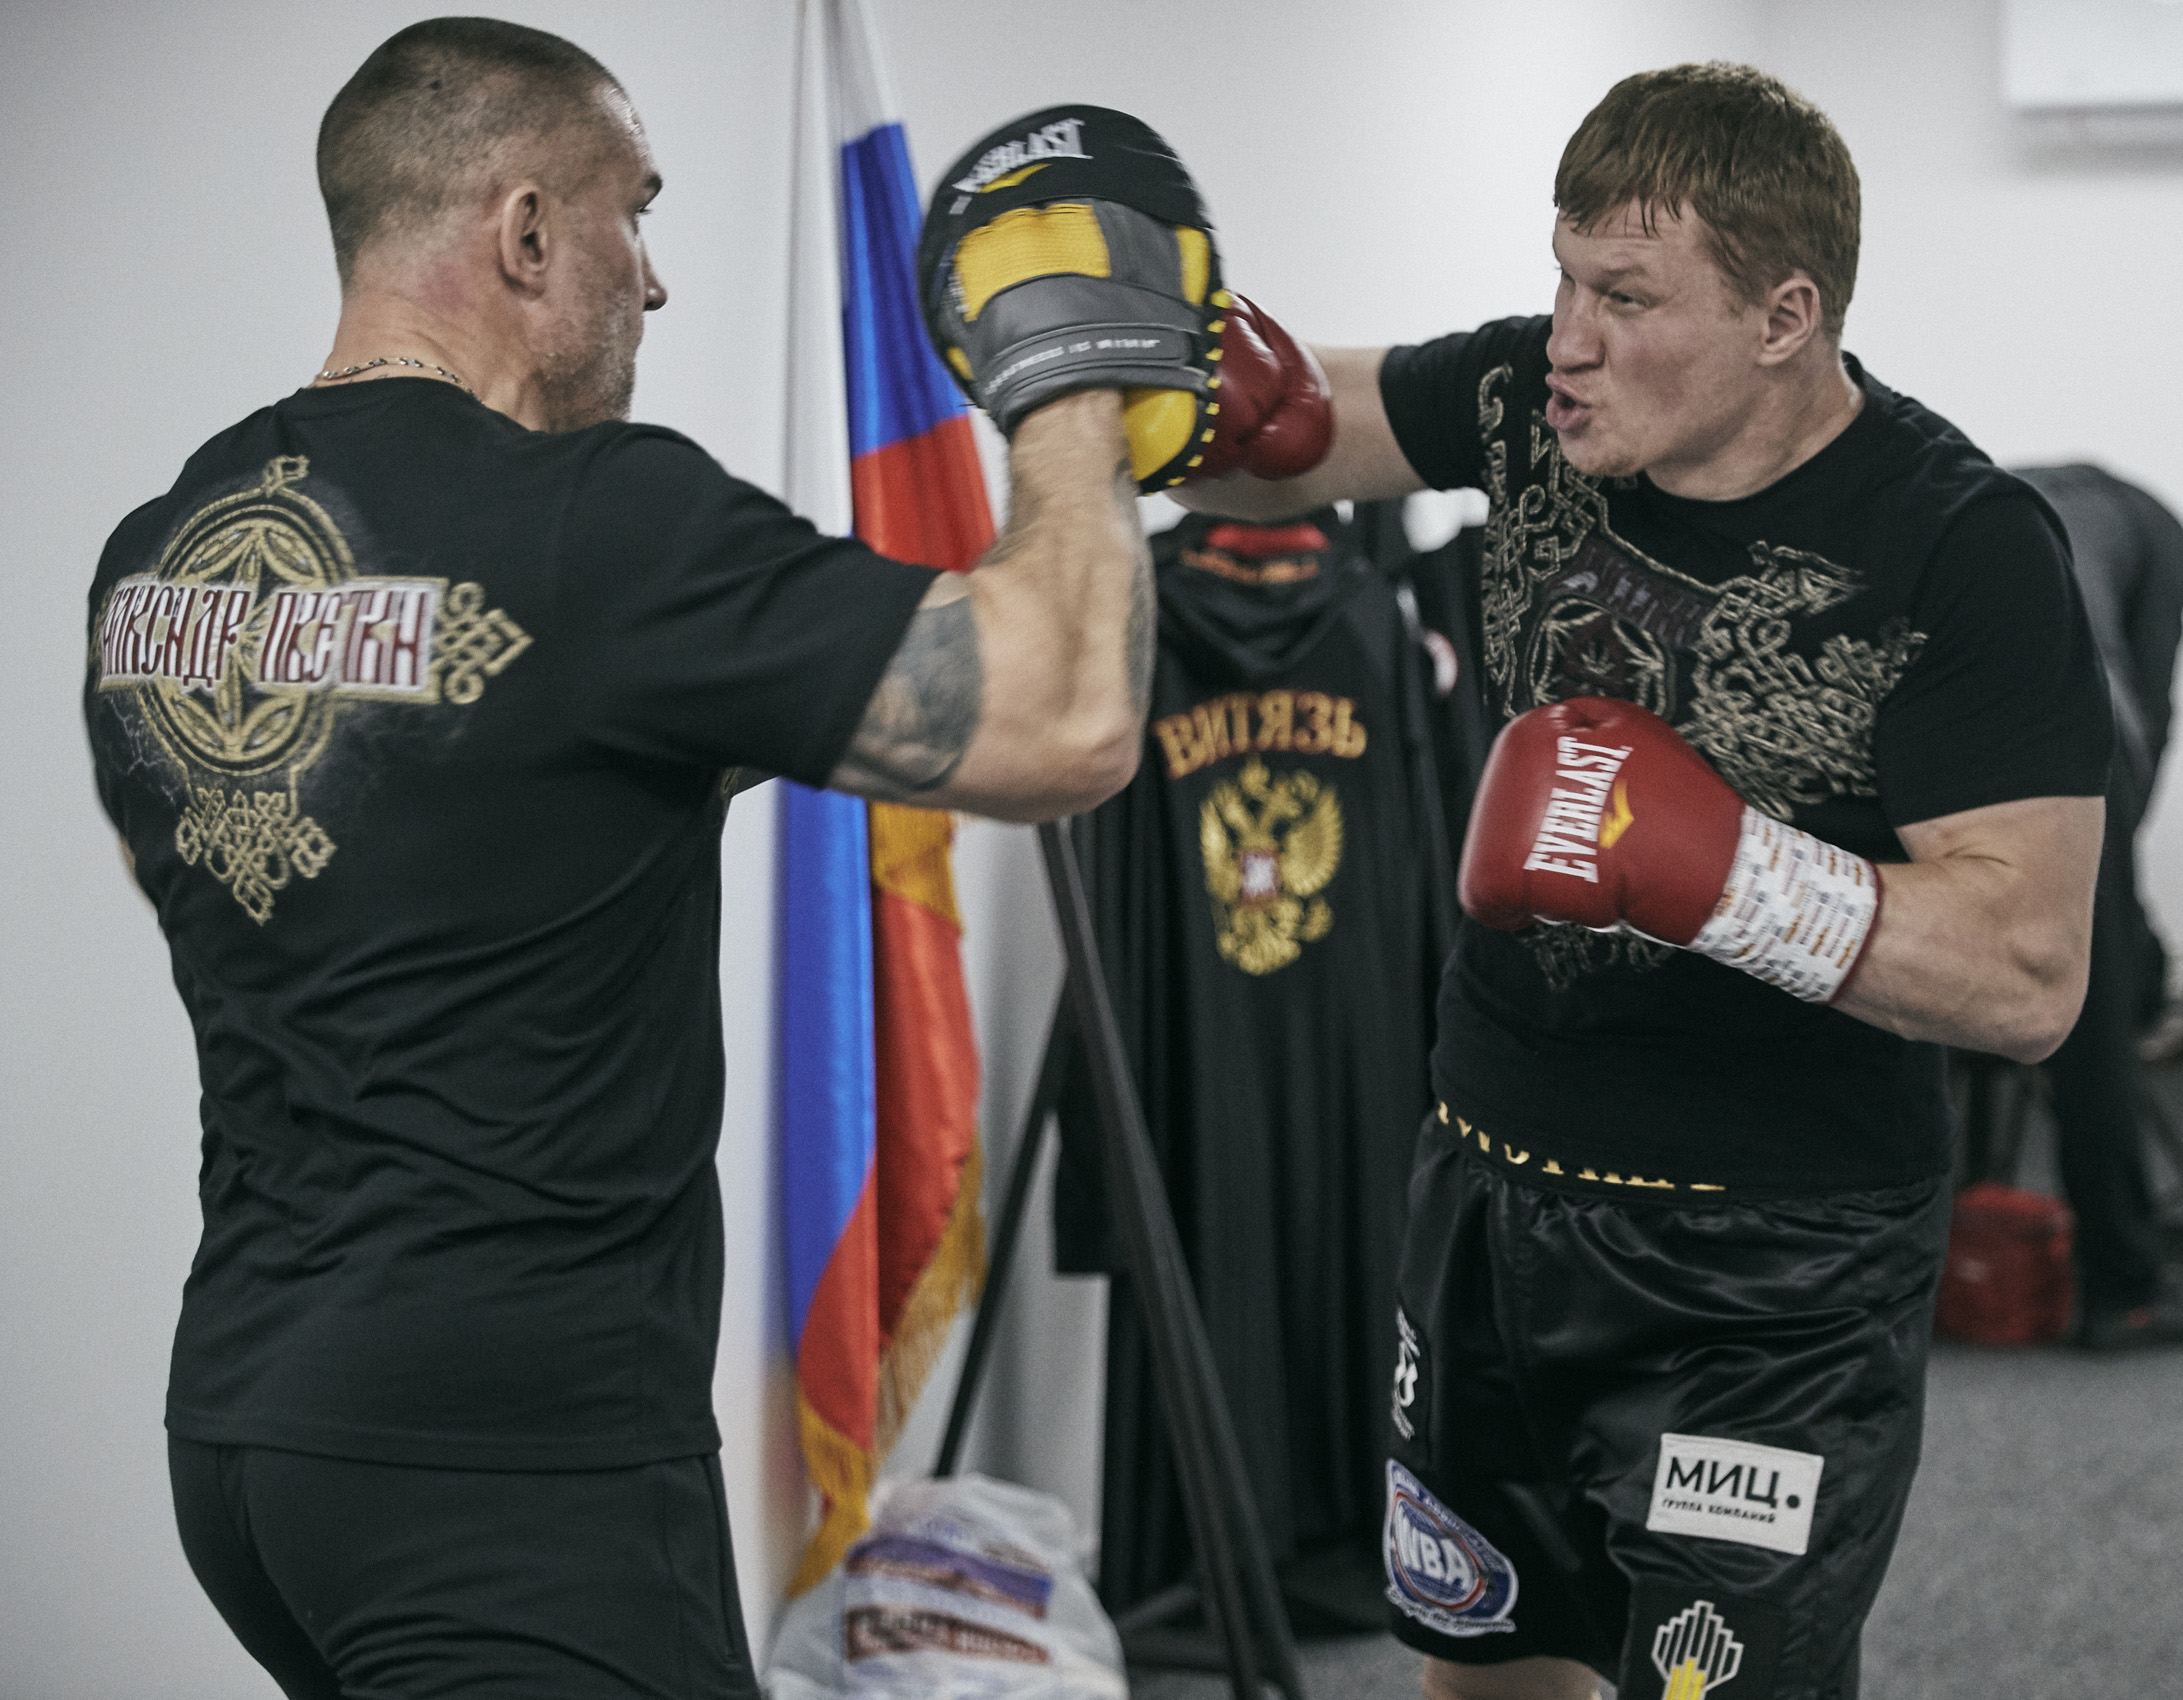 Alexander Povetkin Saudi Arabia warm up Dressing room Backstage © Mark Robinson Photographer Matchrrom Boxing